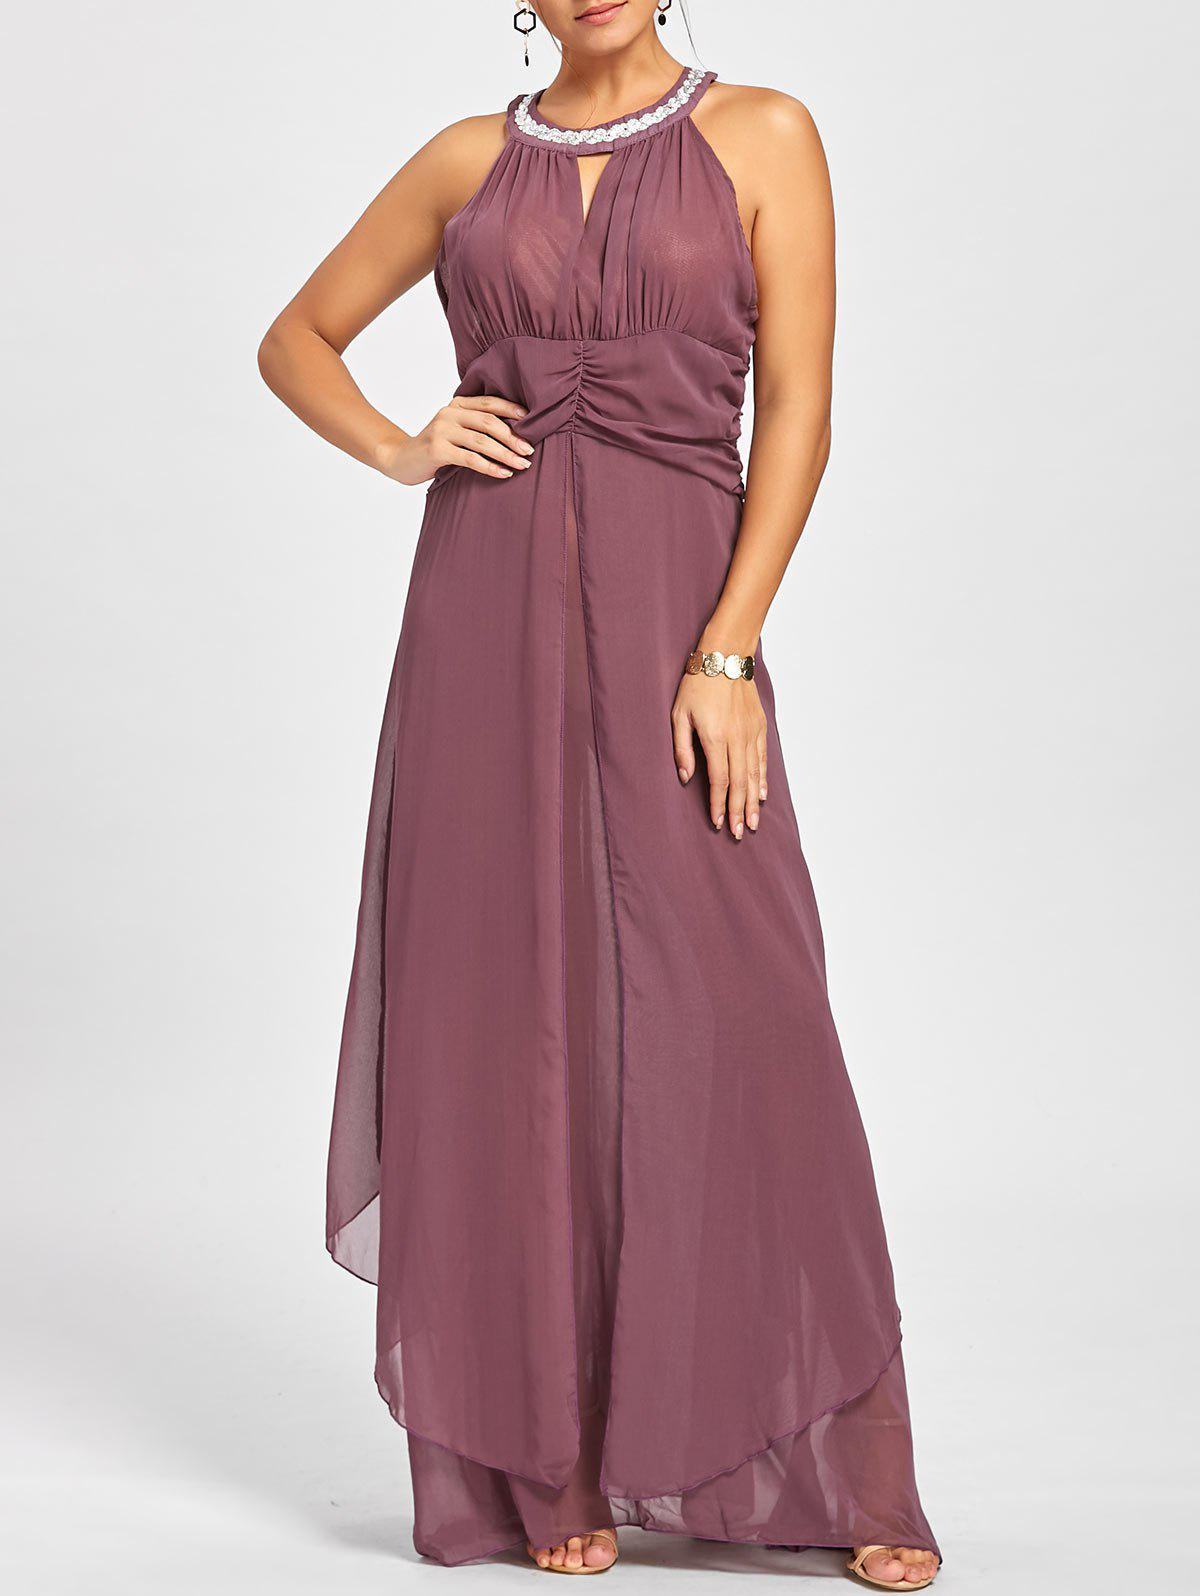 Outfit Empire Waist Sleeveless Flowy Cocktail Dress